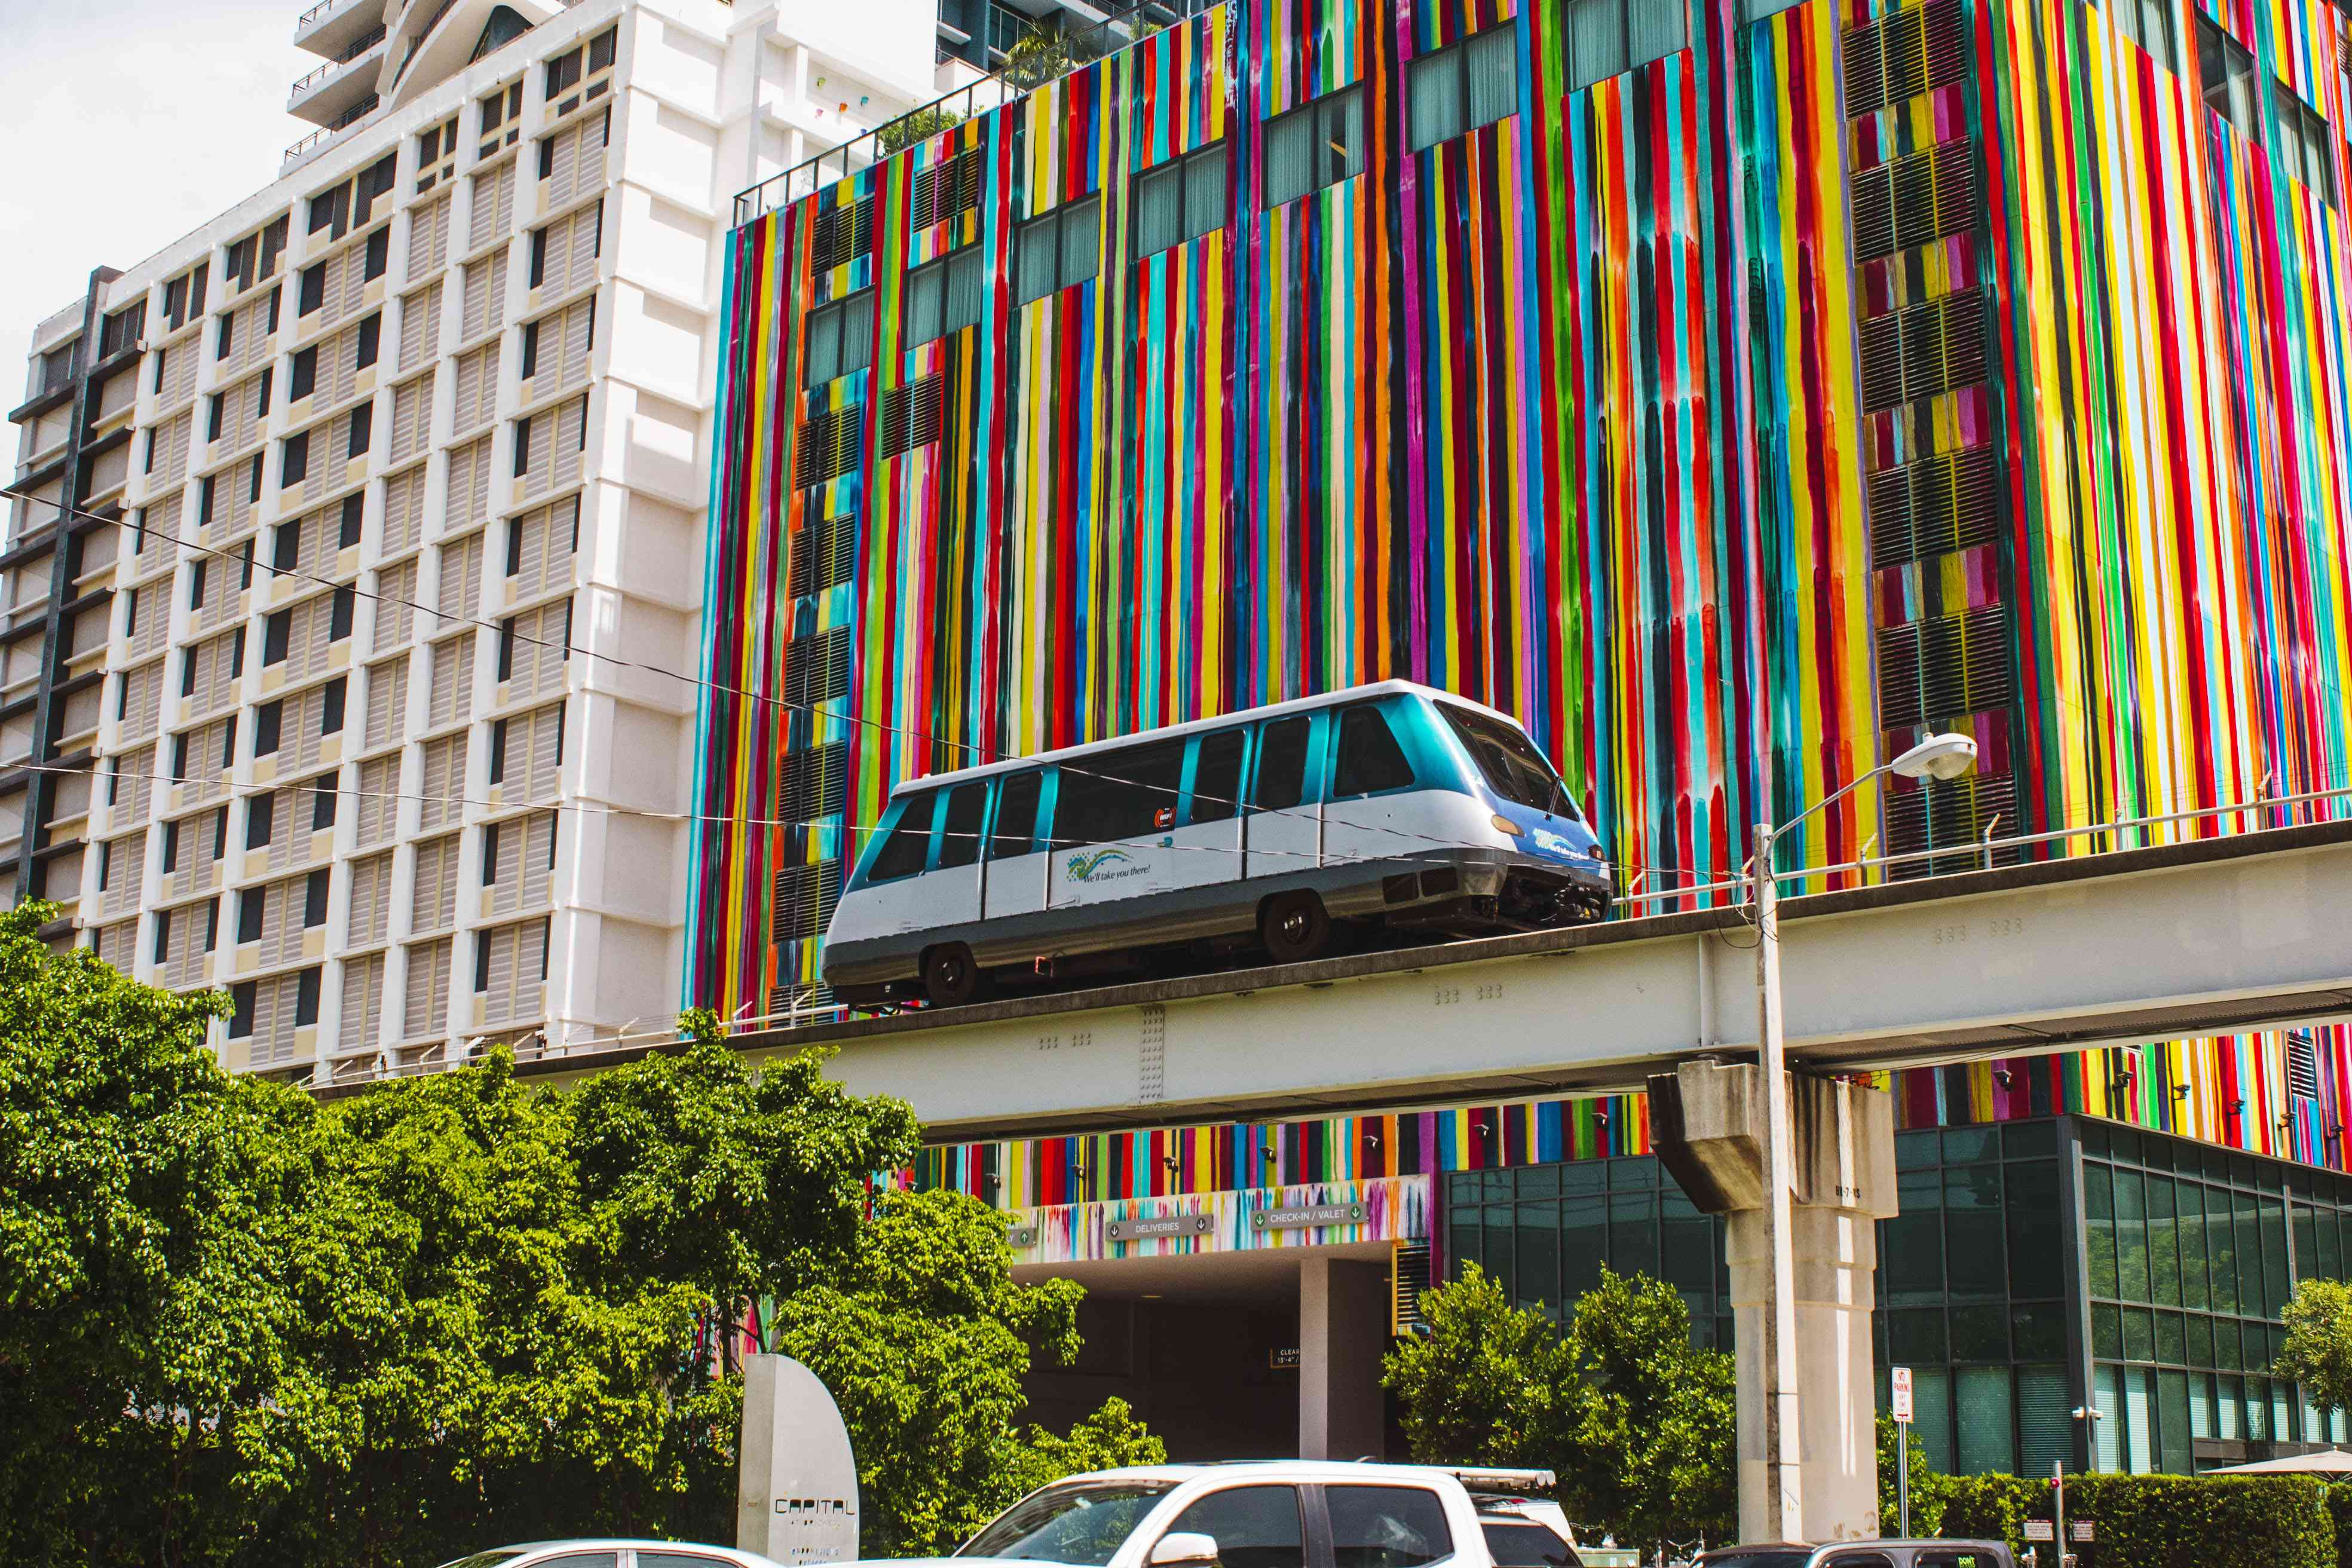 MetroMover driving by colorful buildings in Brickell